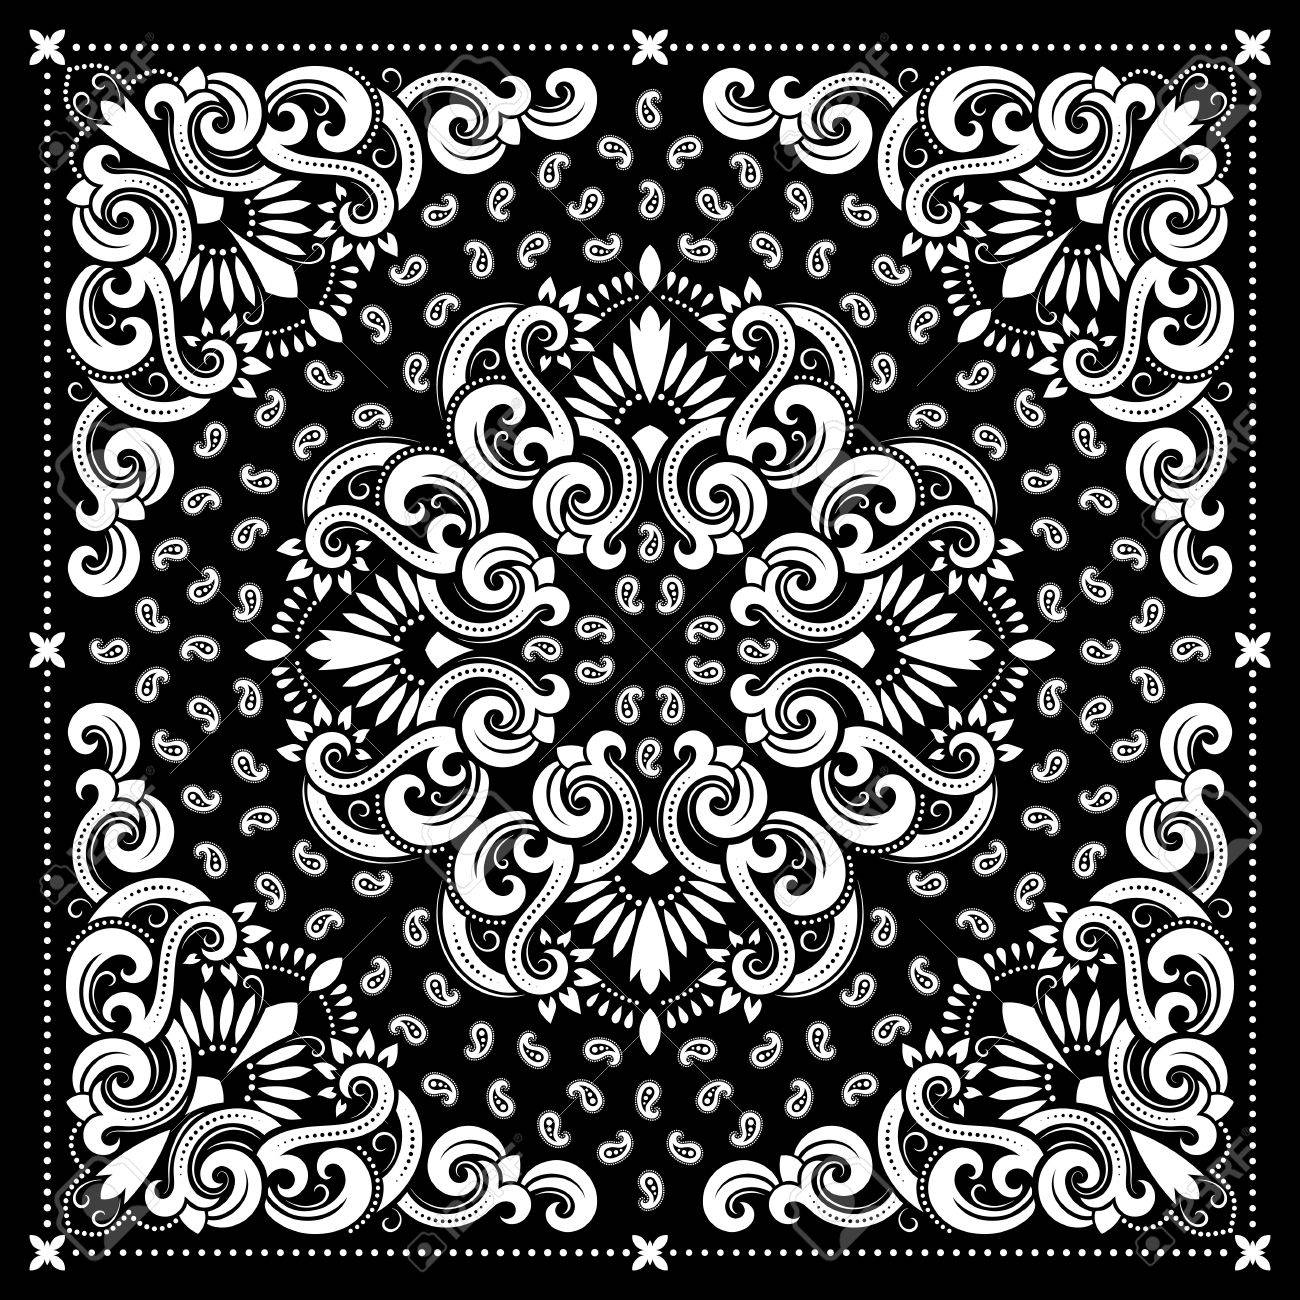 Vector ornament paisley Bandana Print, silk neck scarf or kerchief square pattern design style for print on fabric. - 60195976